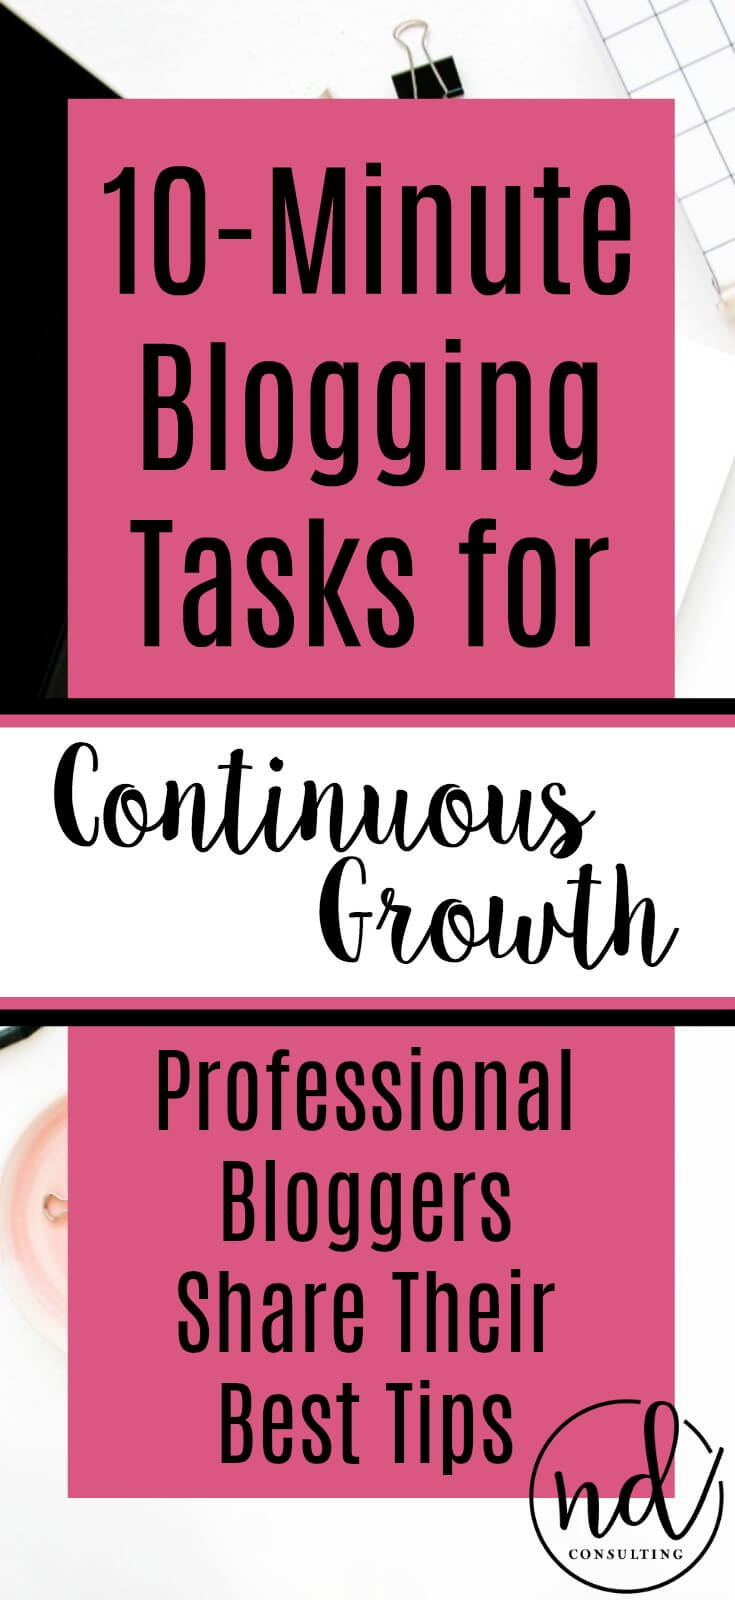 10 Minute Blogging Quick Tips for Continuous Growth Strategy